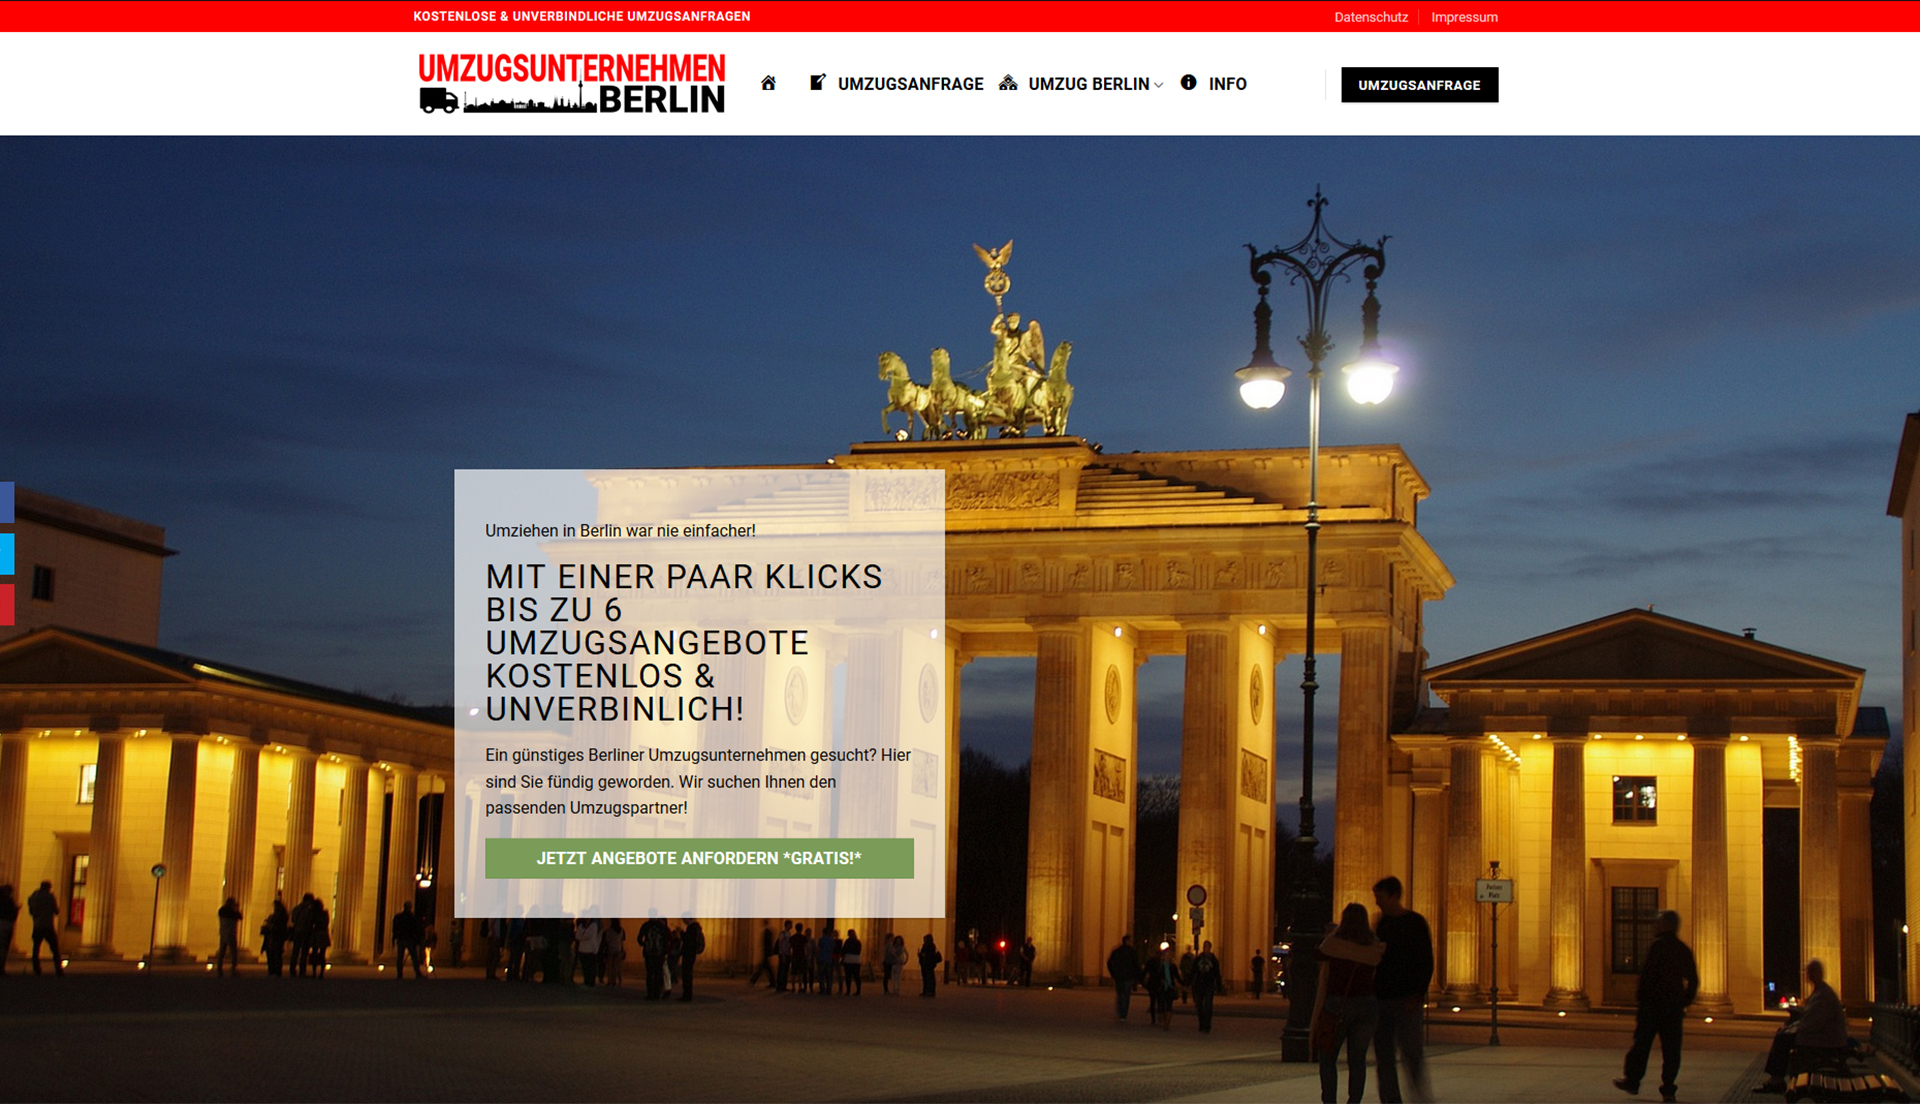 WordPress-Website Umzugsunternehmen Berlin